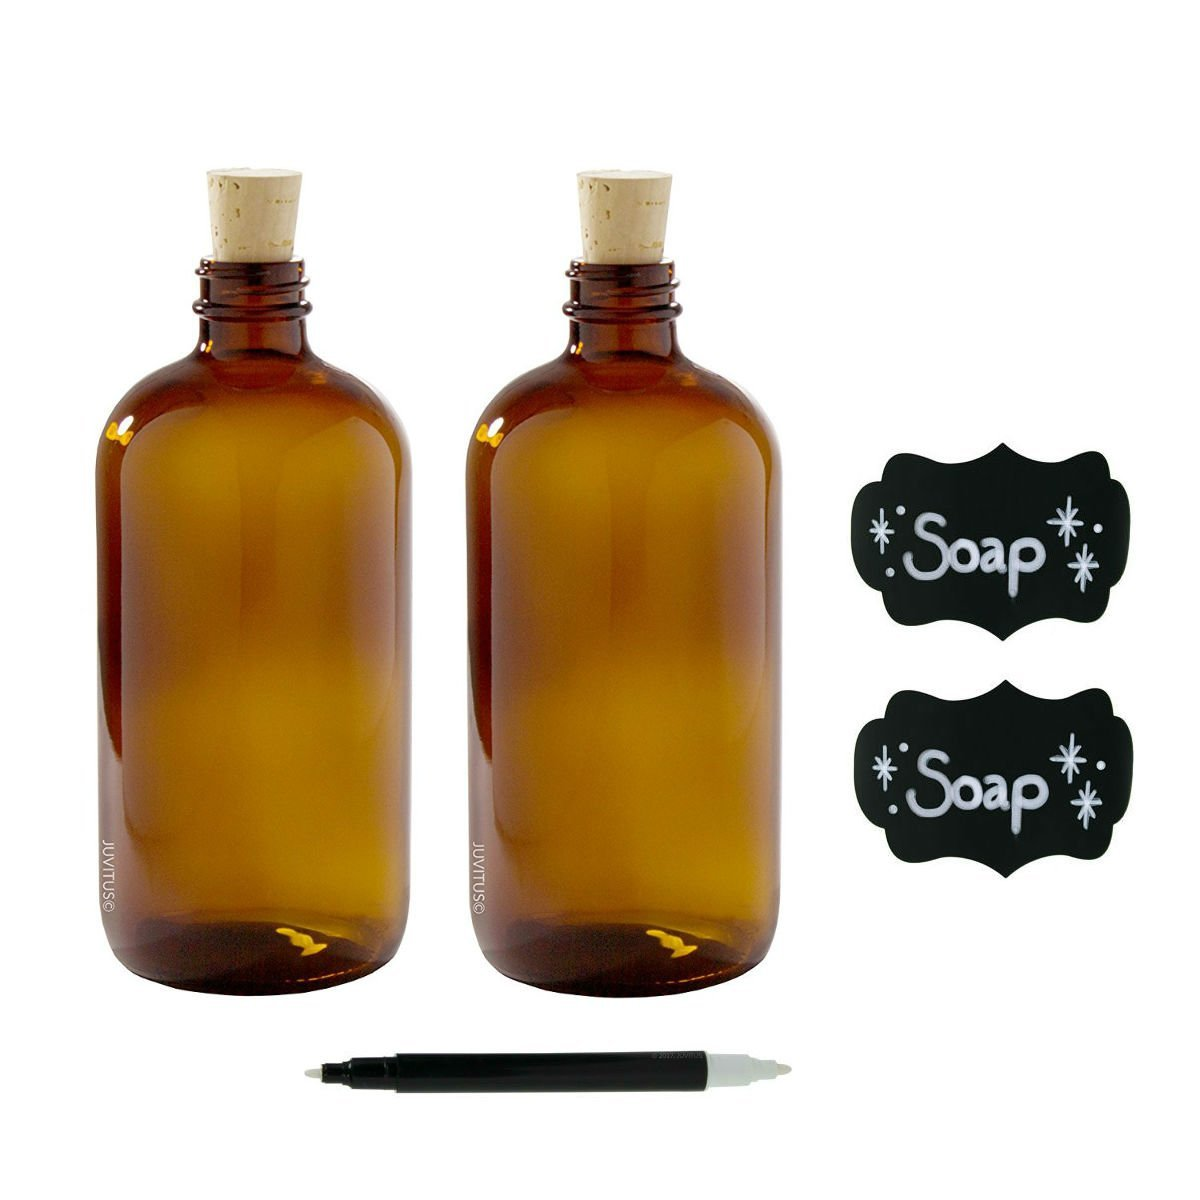 16 oz Amber Glass Boston Round Bottle with Cork Stopper Closure (2 Pack) + Black Chalkboard Labels and Chalkboard Marker